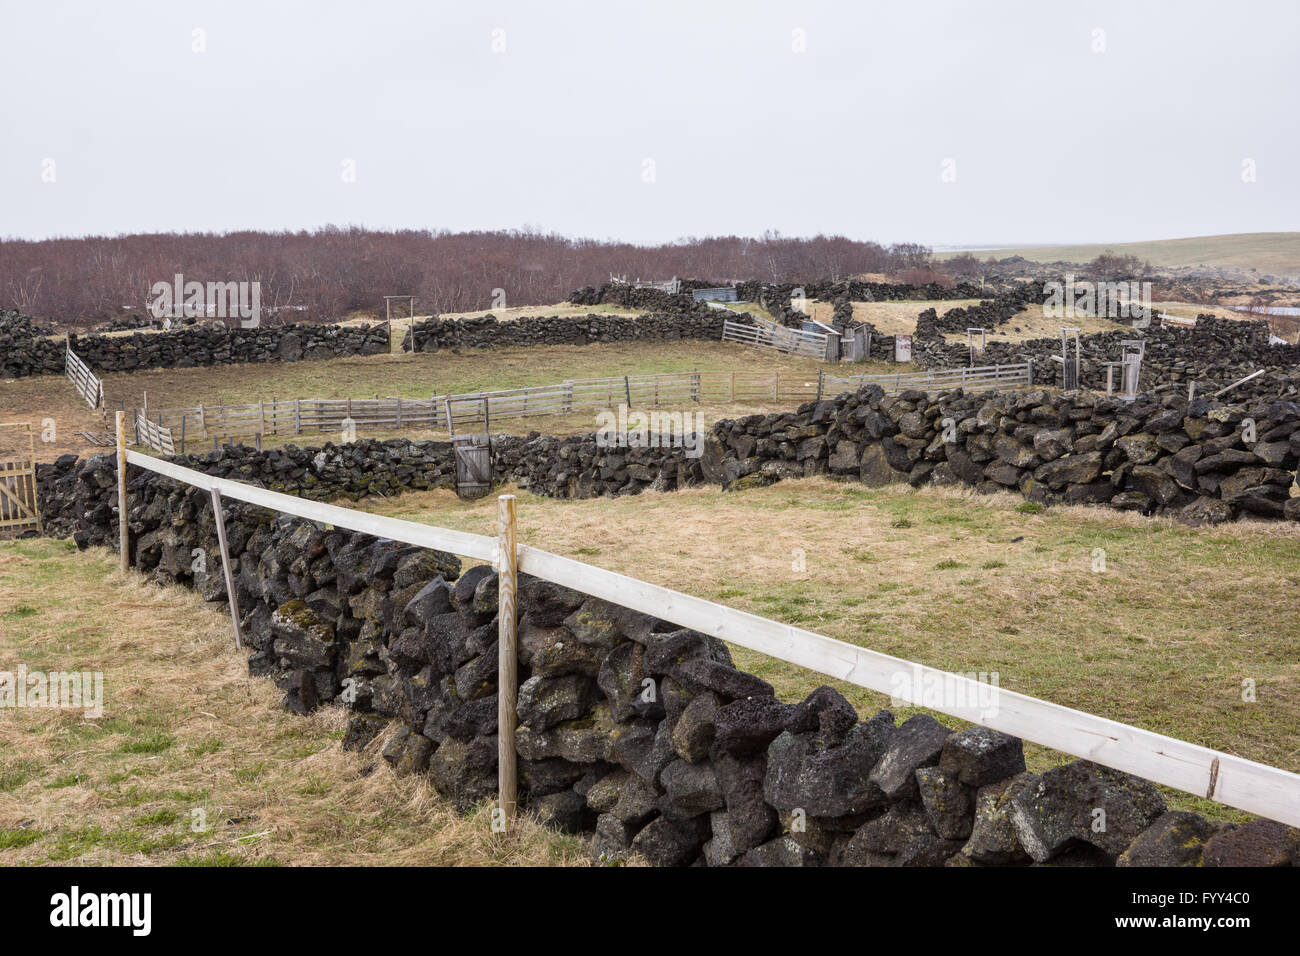 Paddocks made from basalt rock walls in Iceland - Stock Image